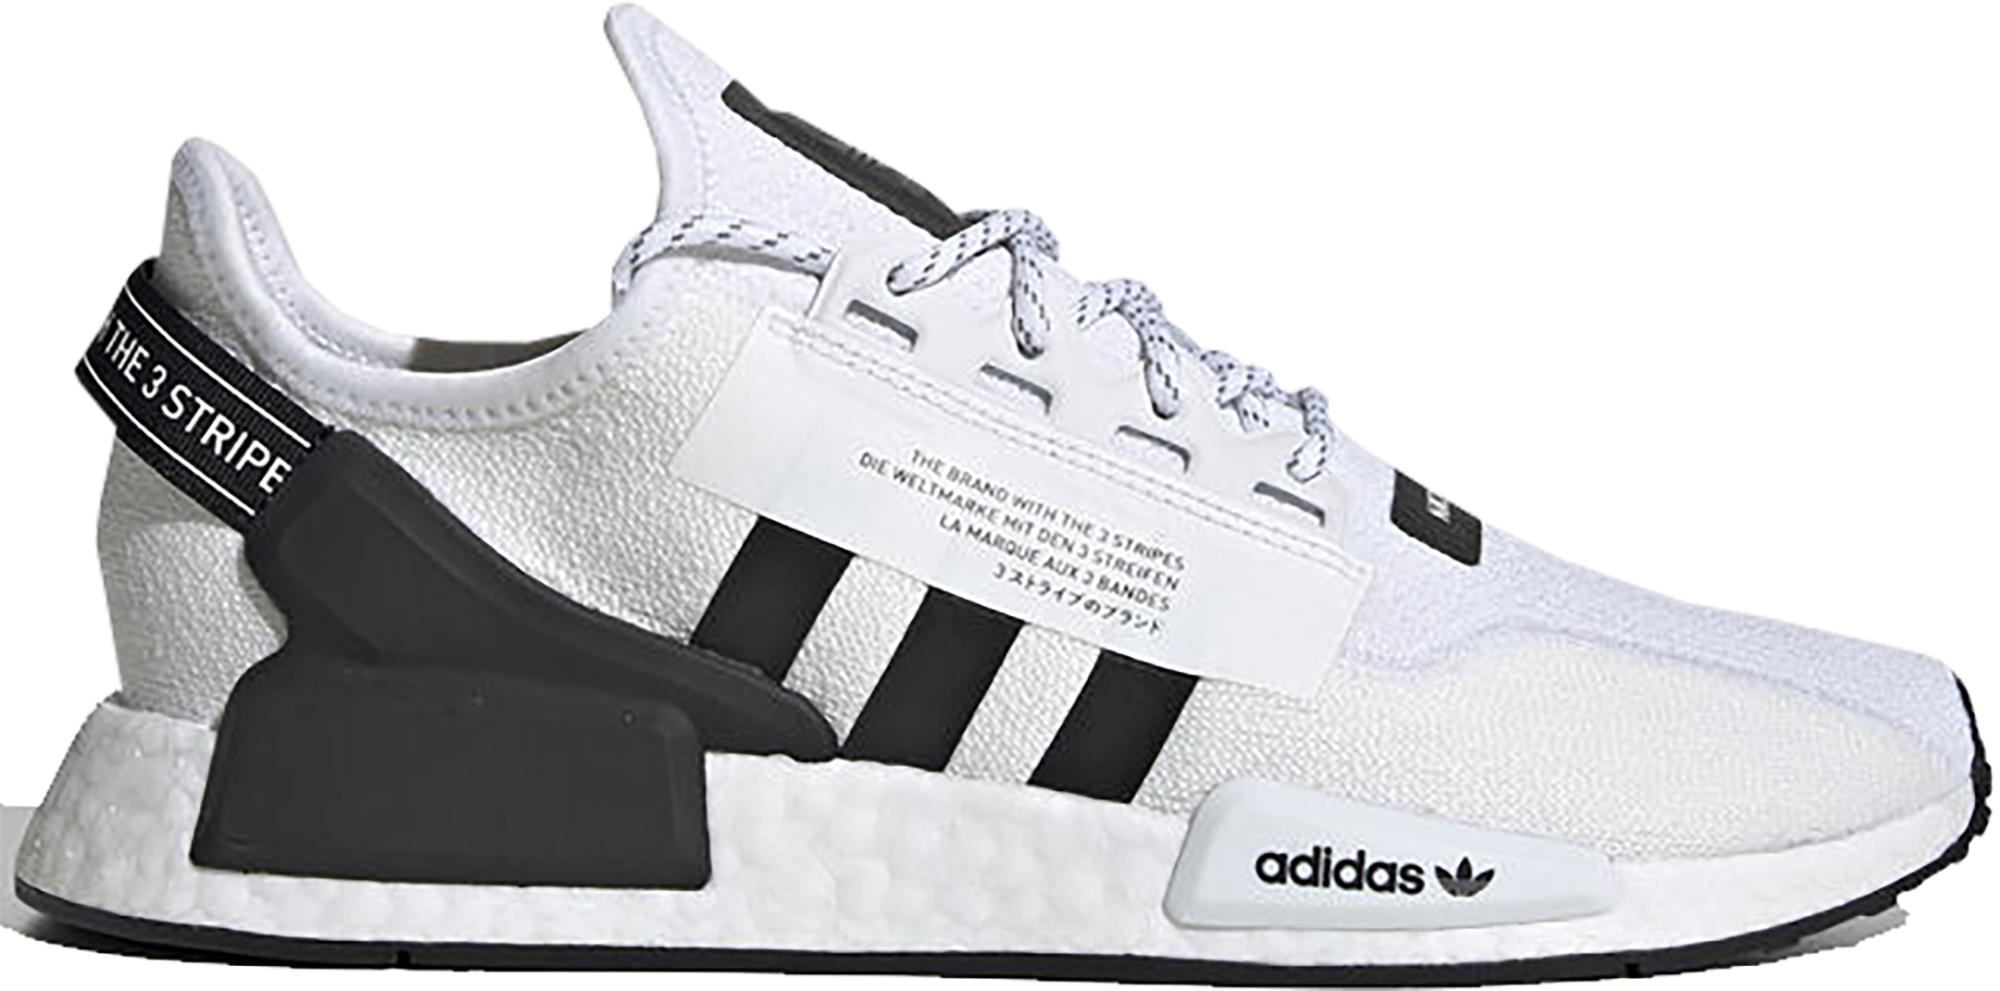 Adidas Nmd V2 Footwear White Core Black For Men Lyst